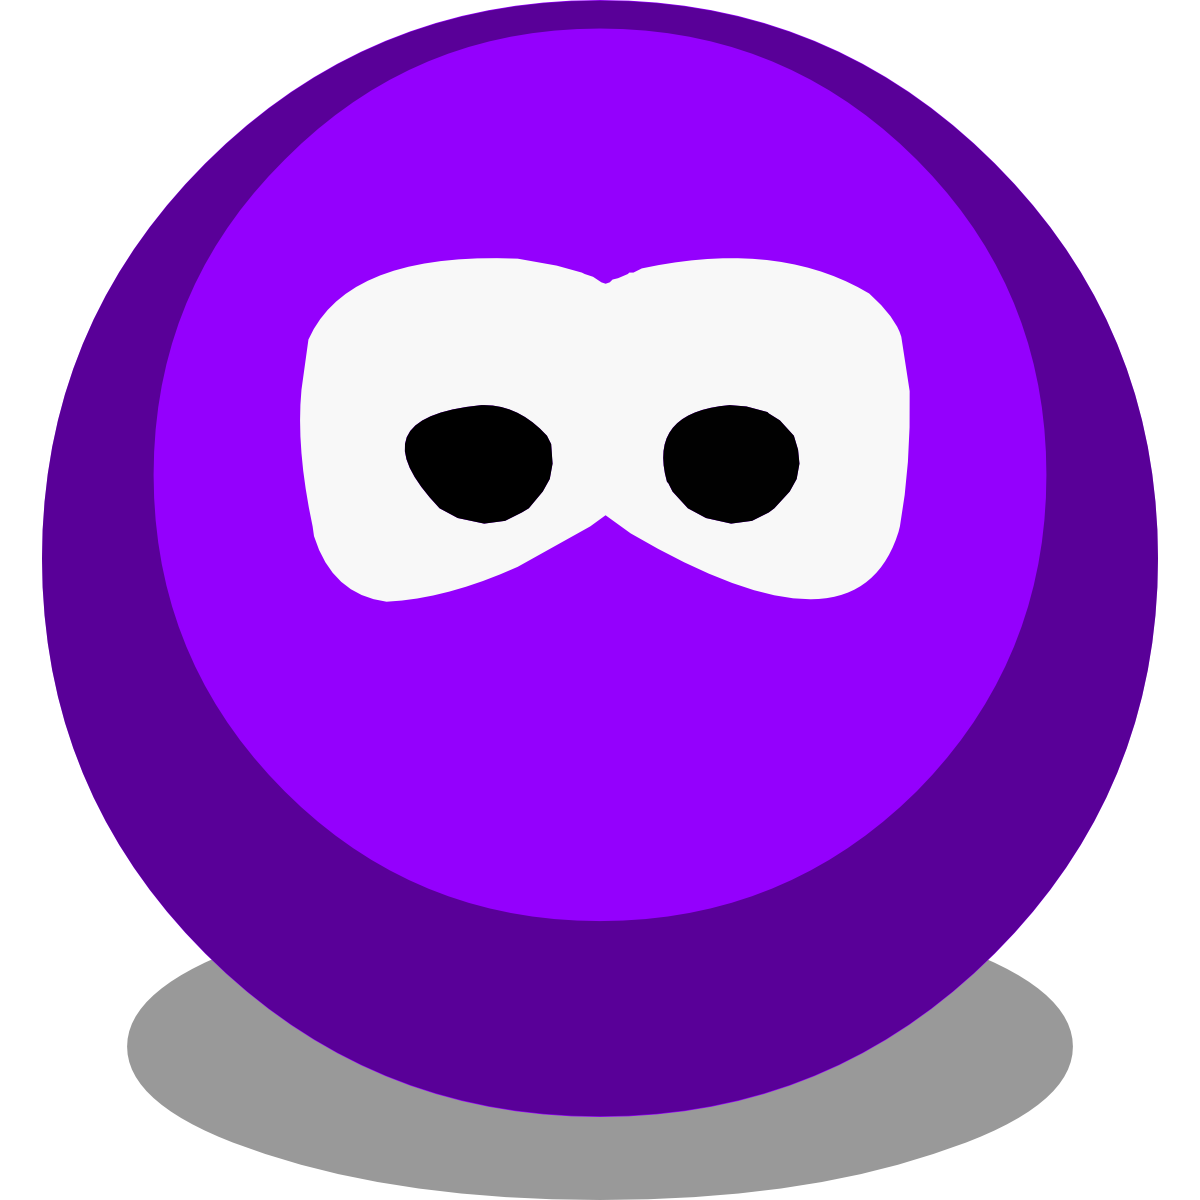 Purple dot png. Image light color icon